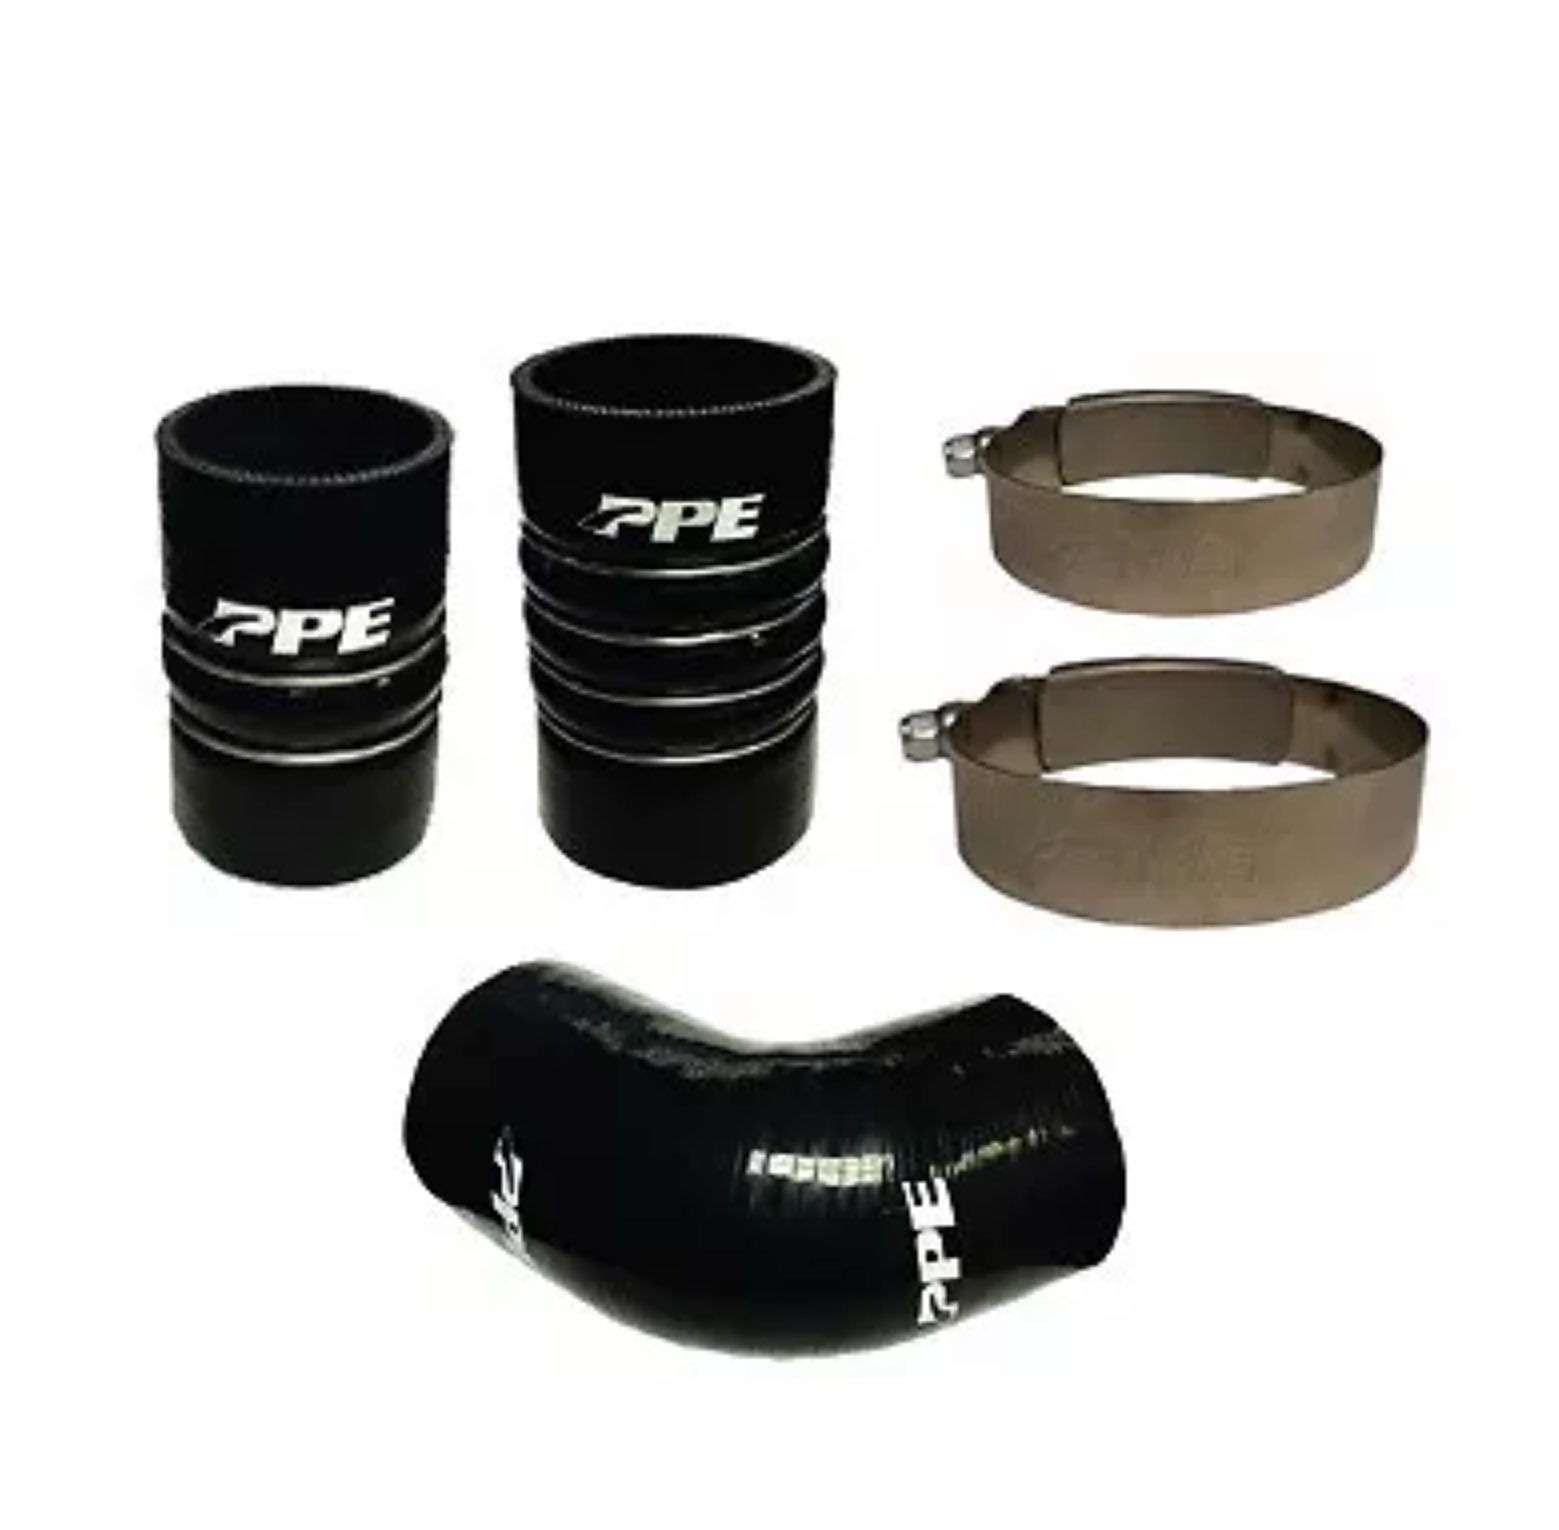 06-10 Duramax PPE Silicone Hose & Clamp Kit